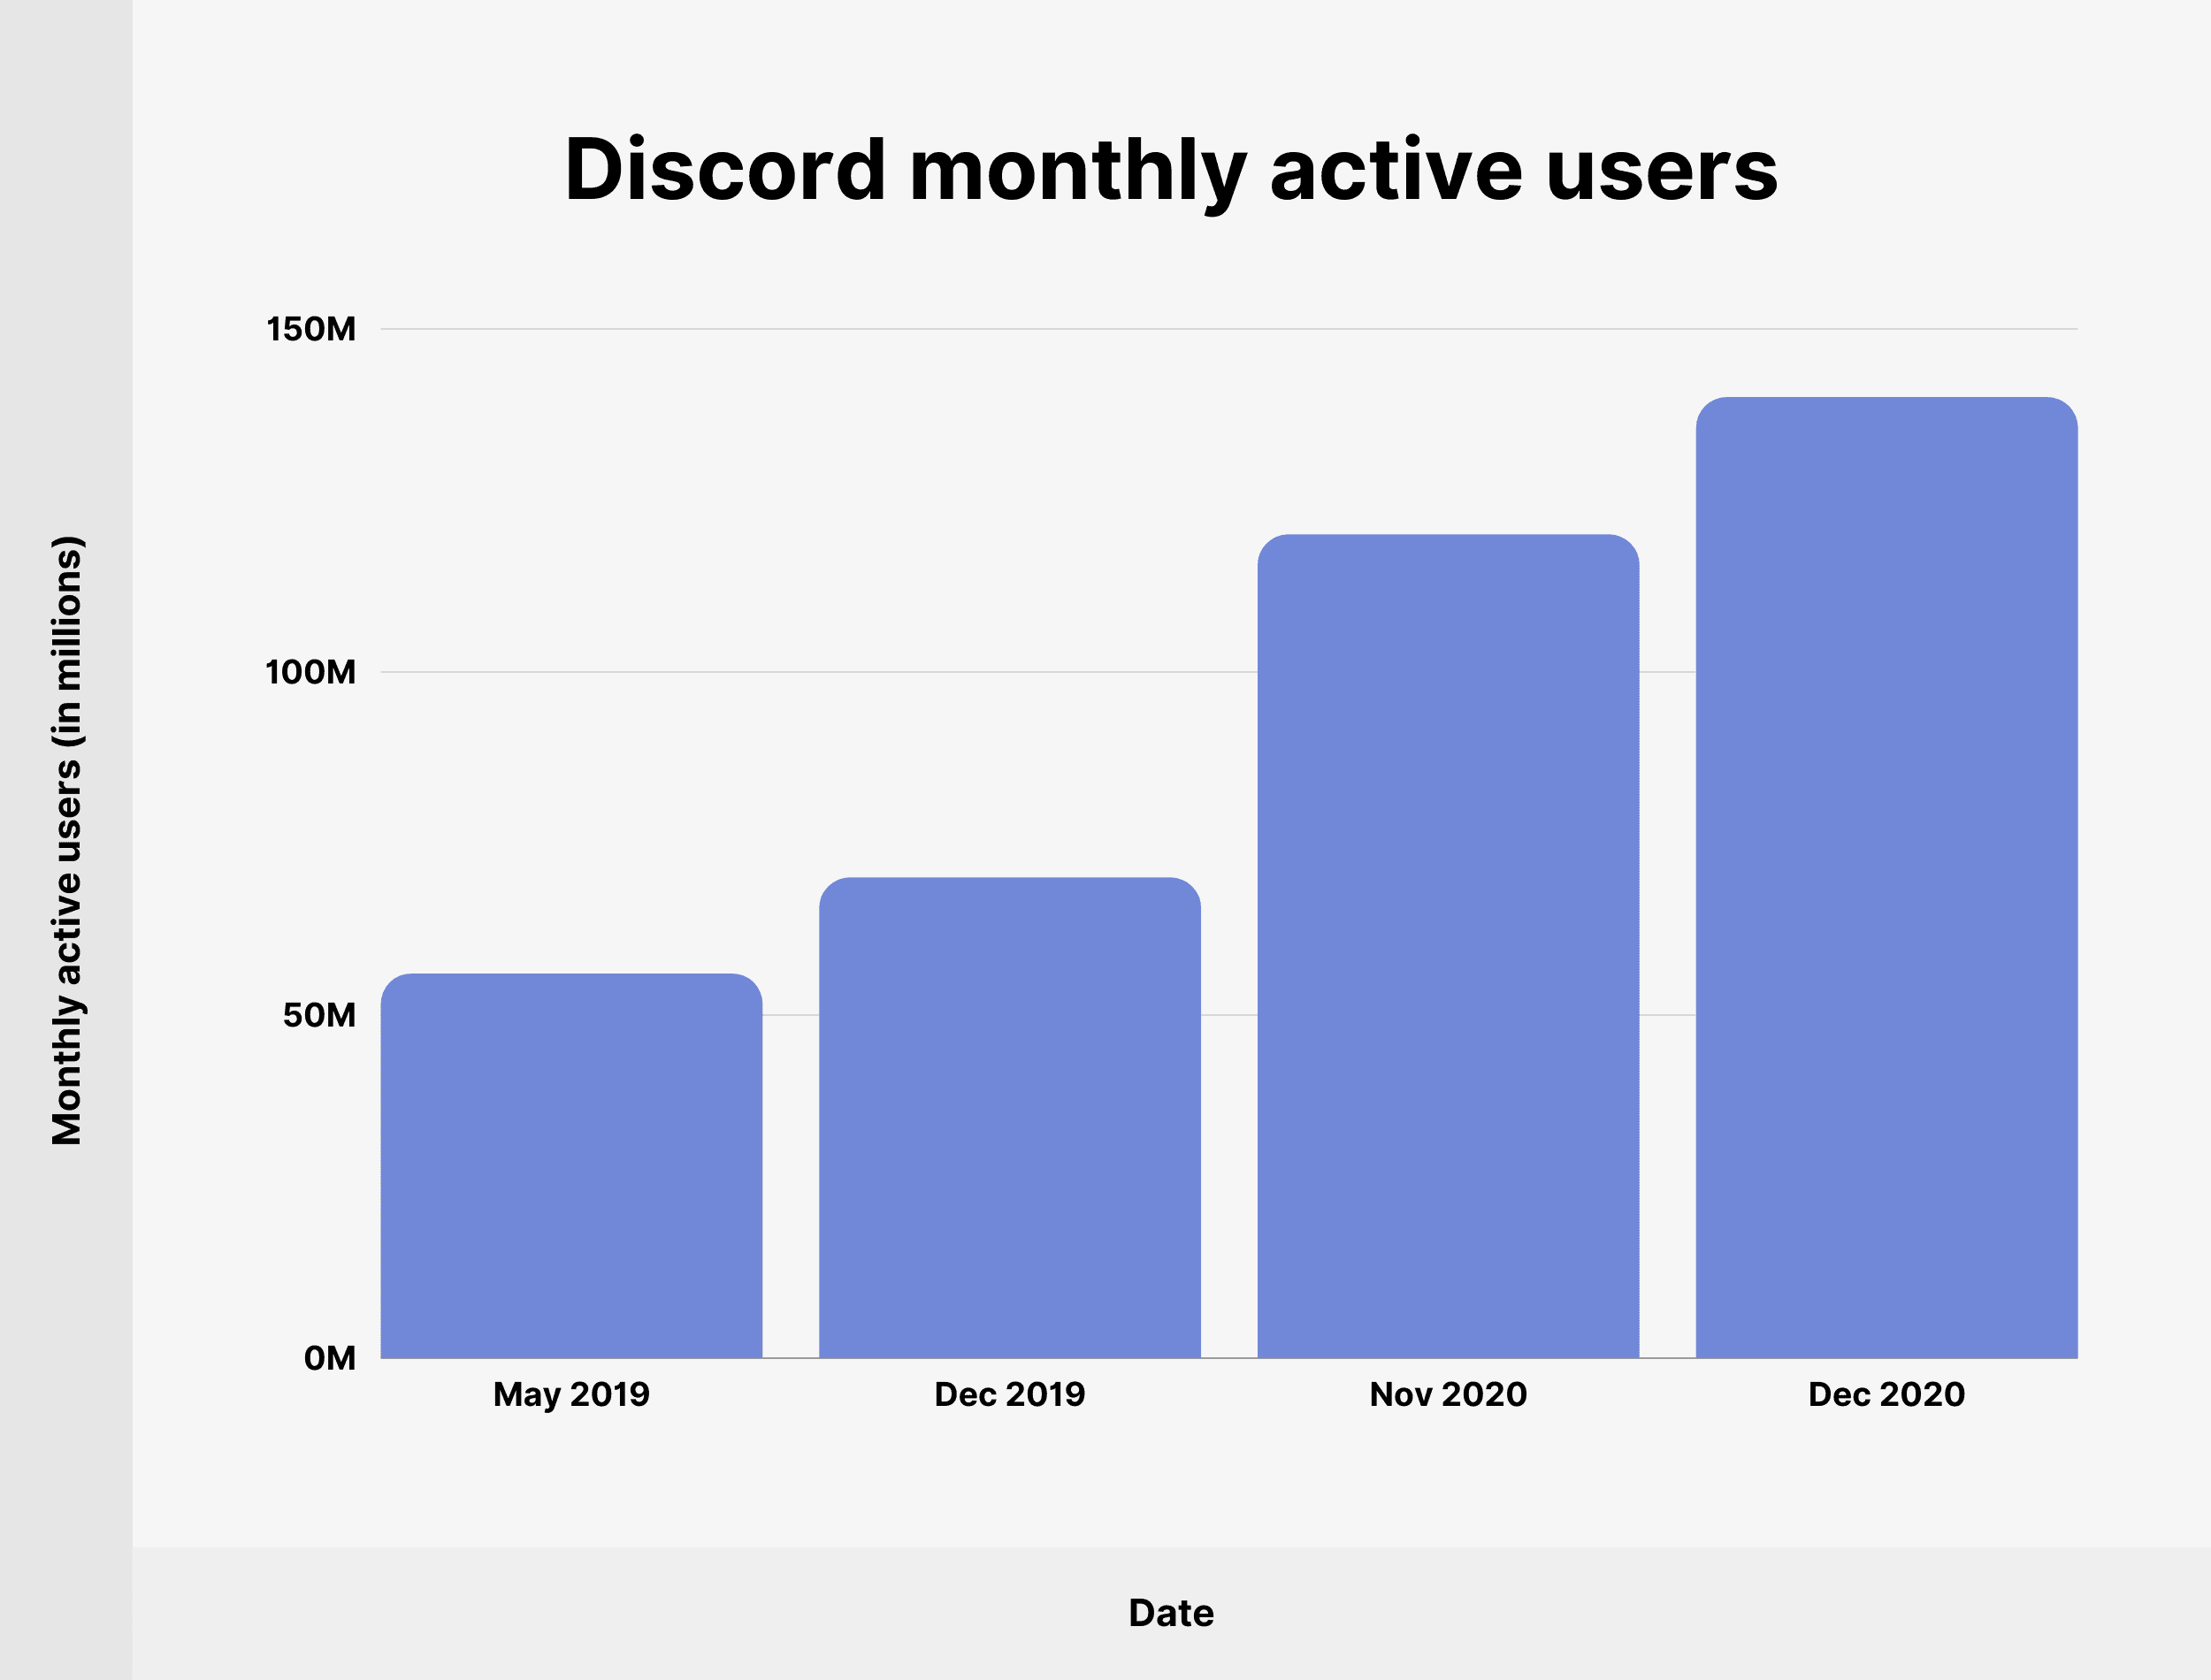 Discord monthly active users